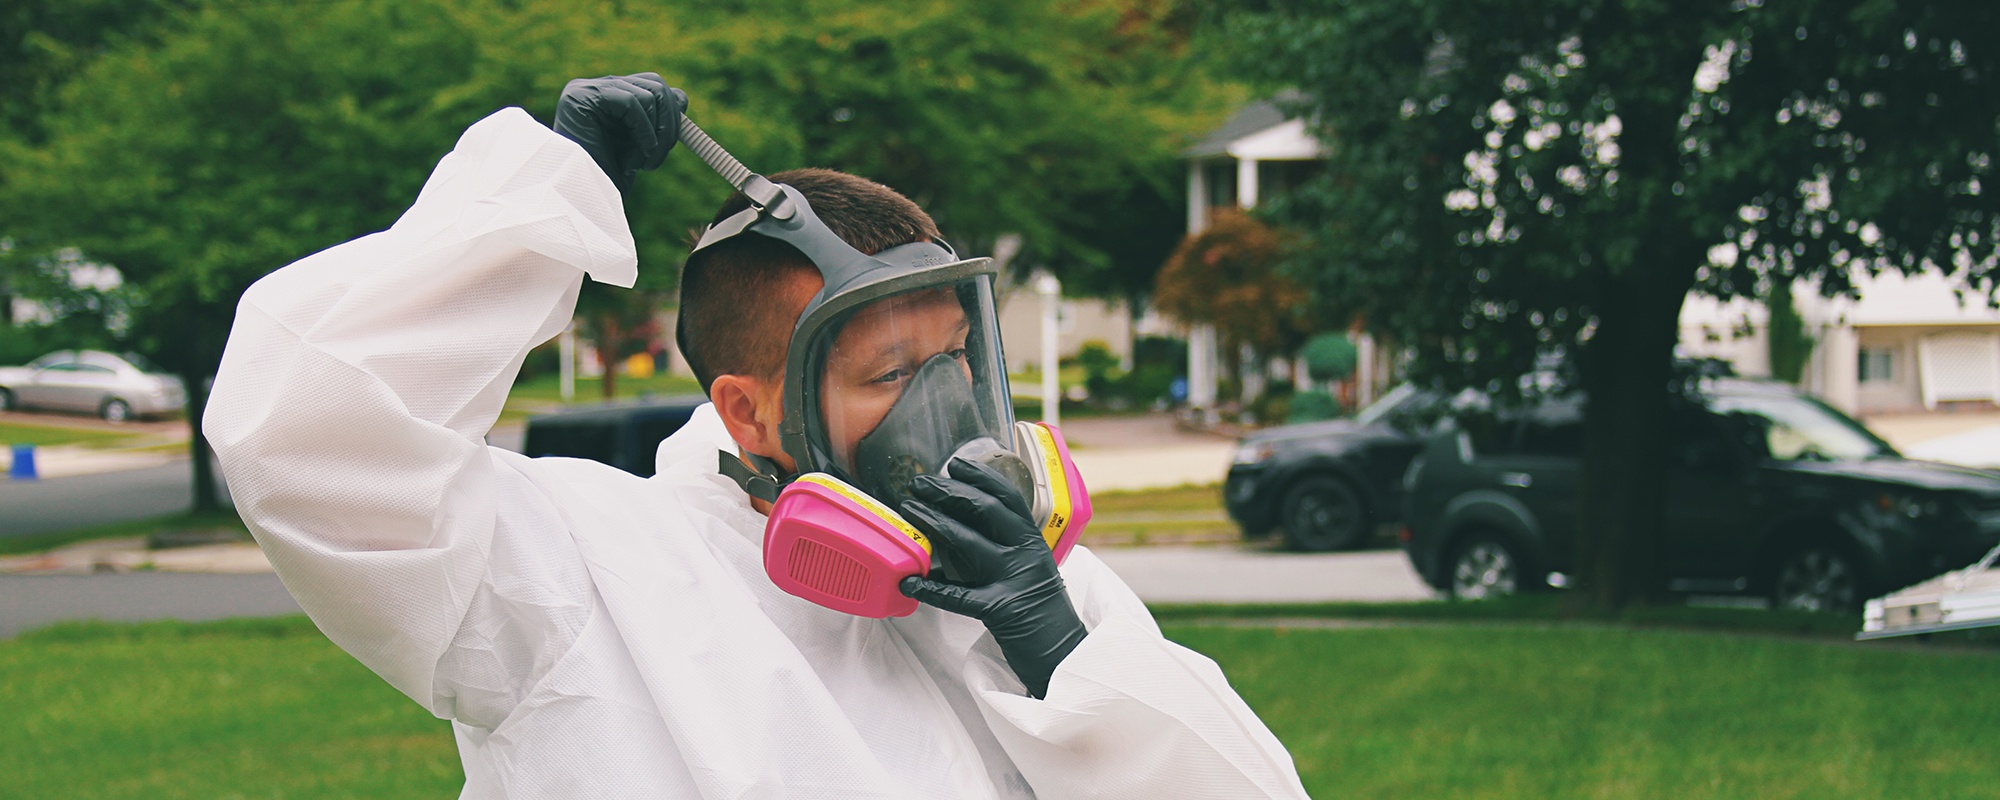 mold-remediation-florence-nj